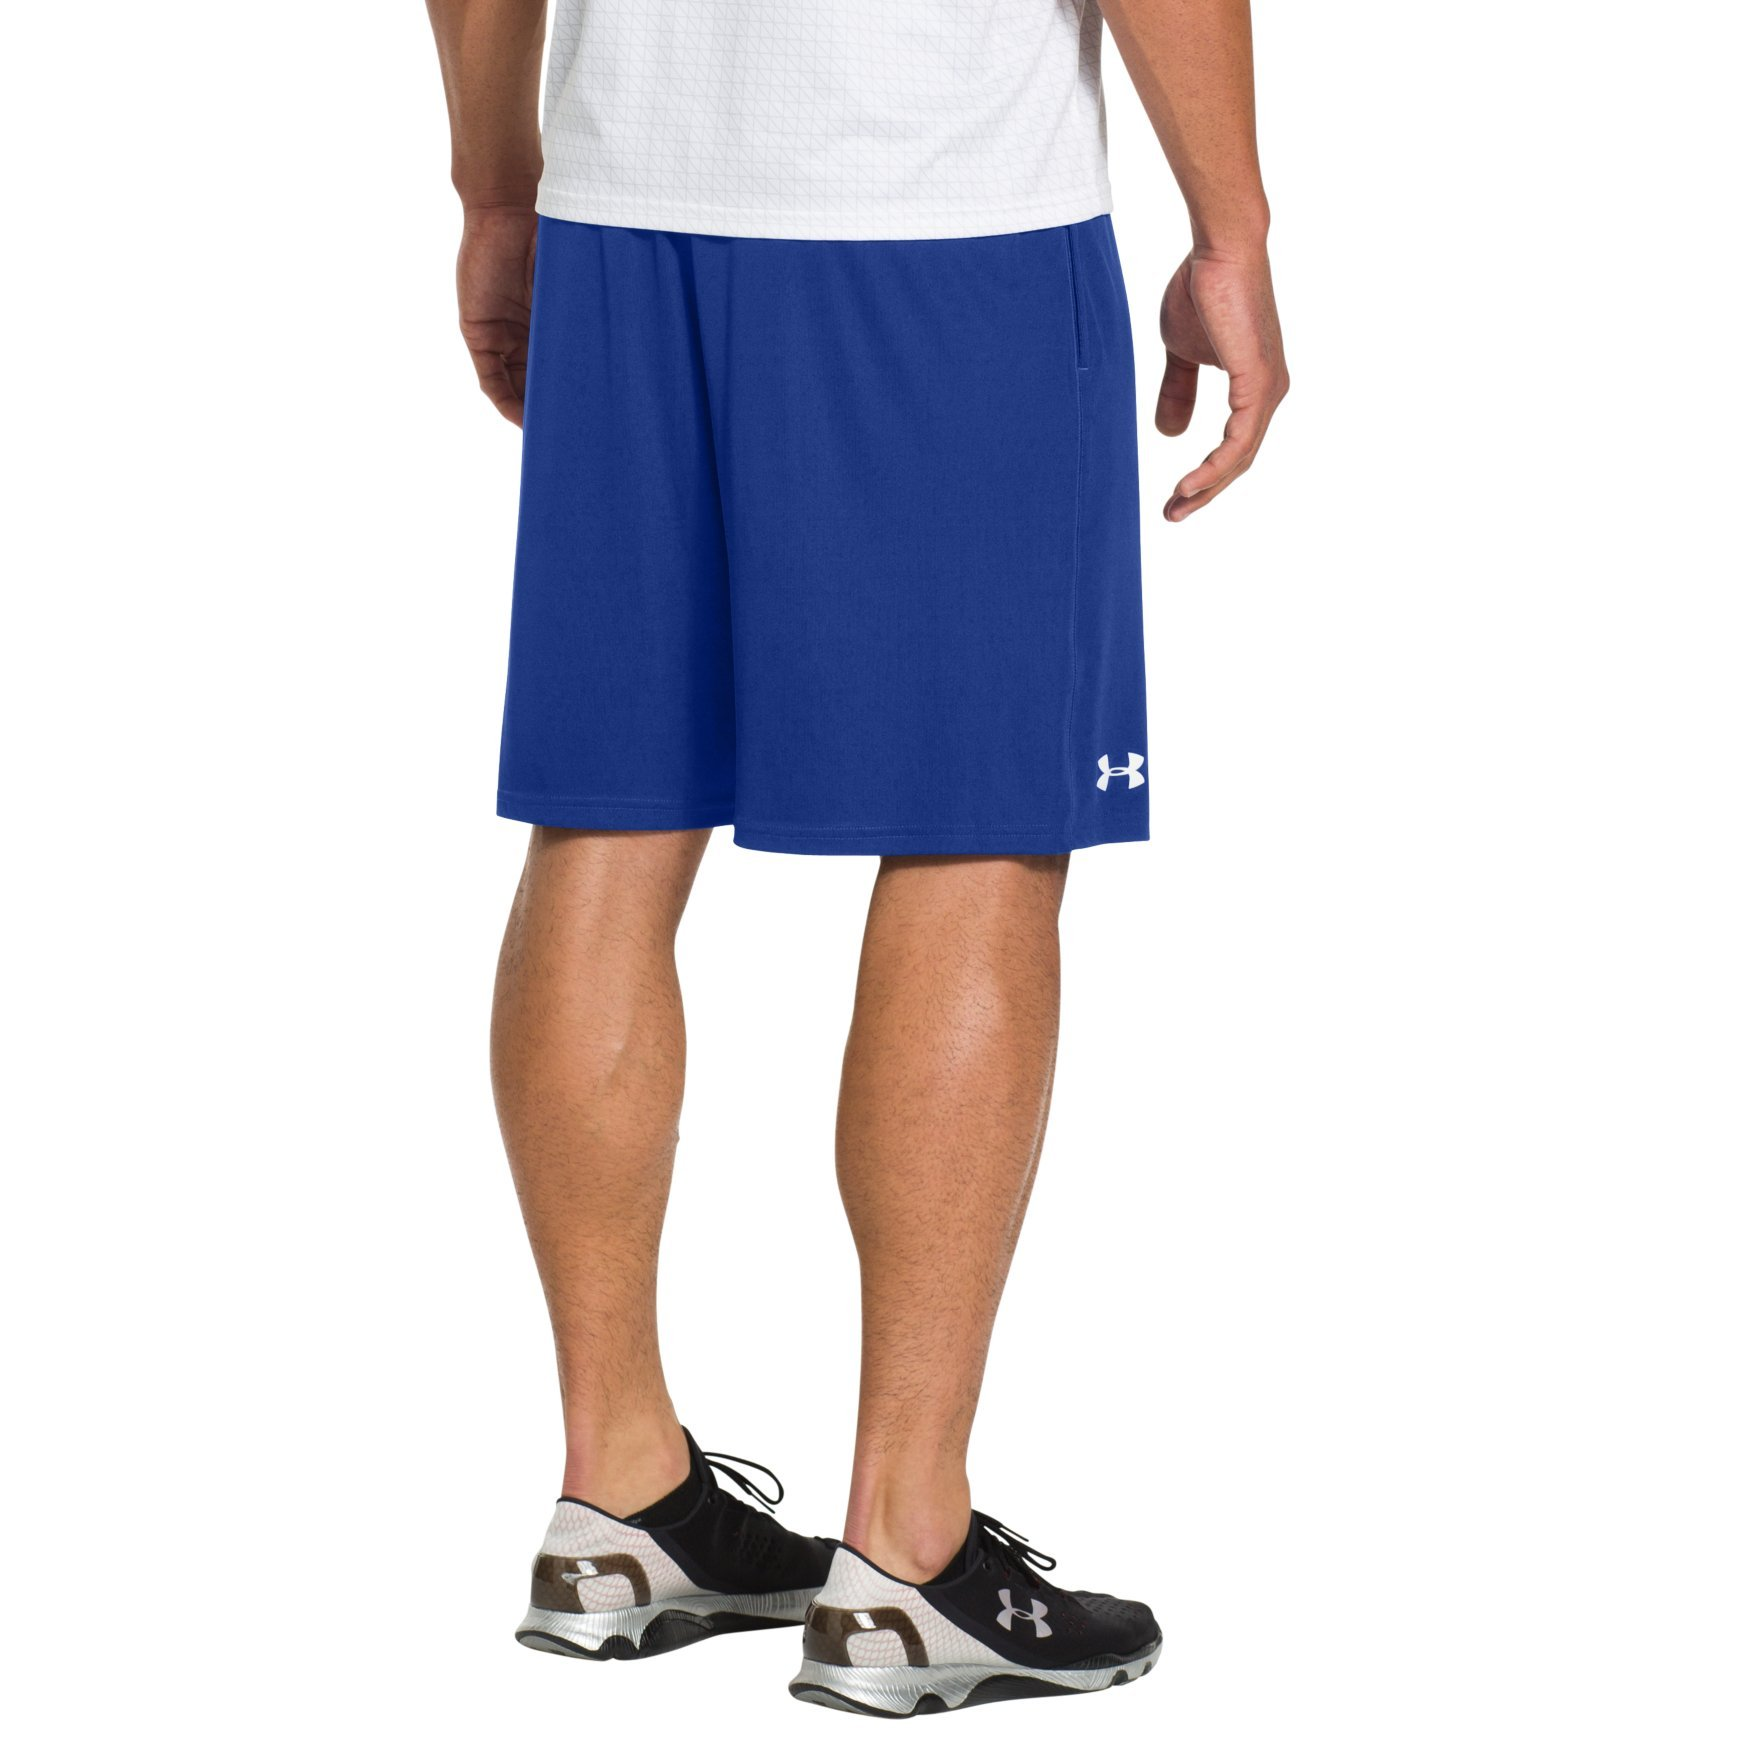 Under Armour Micro Shorts 10 in. - Men39;s